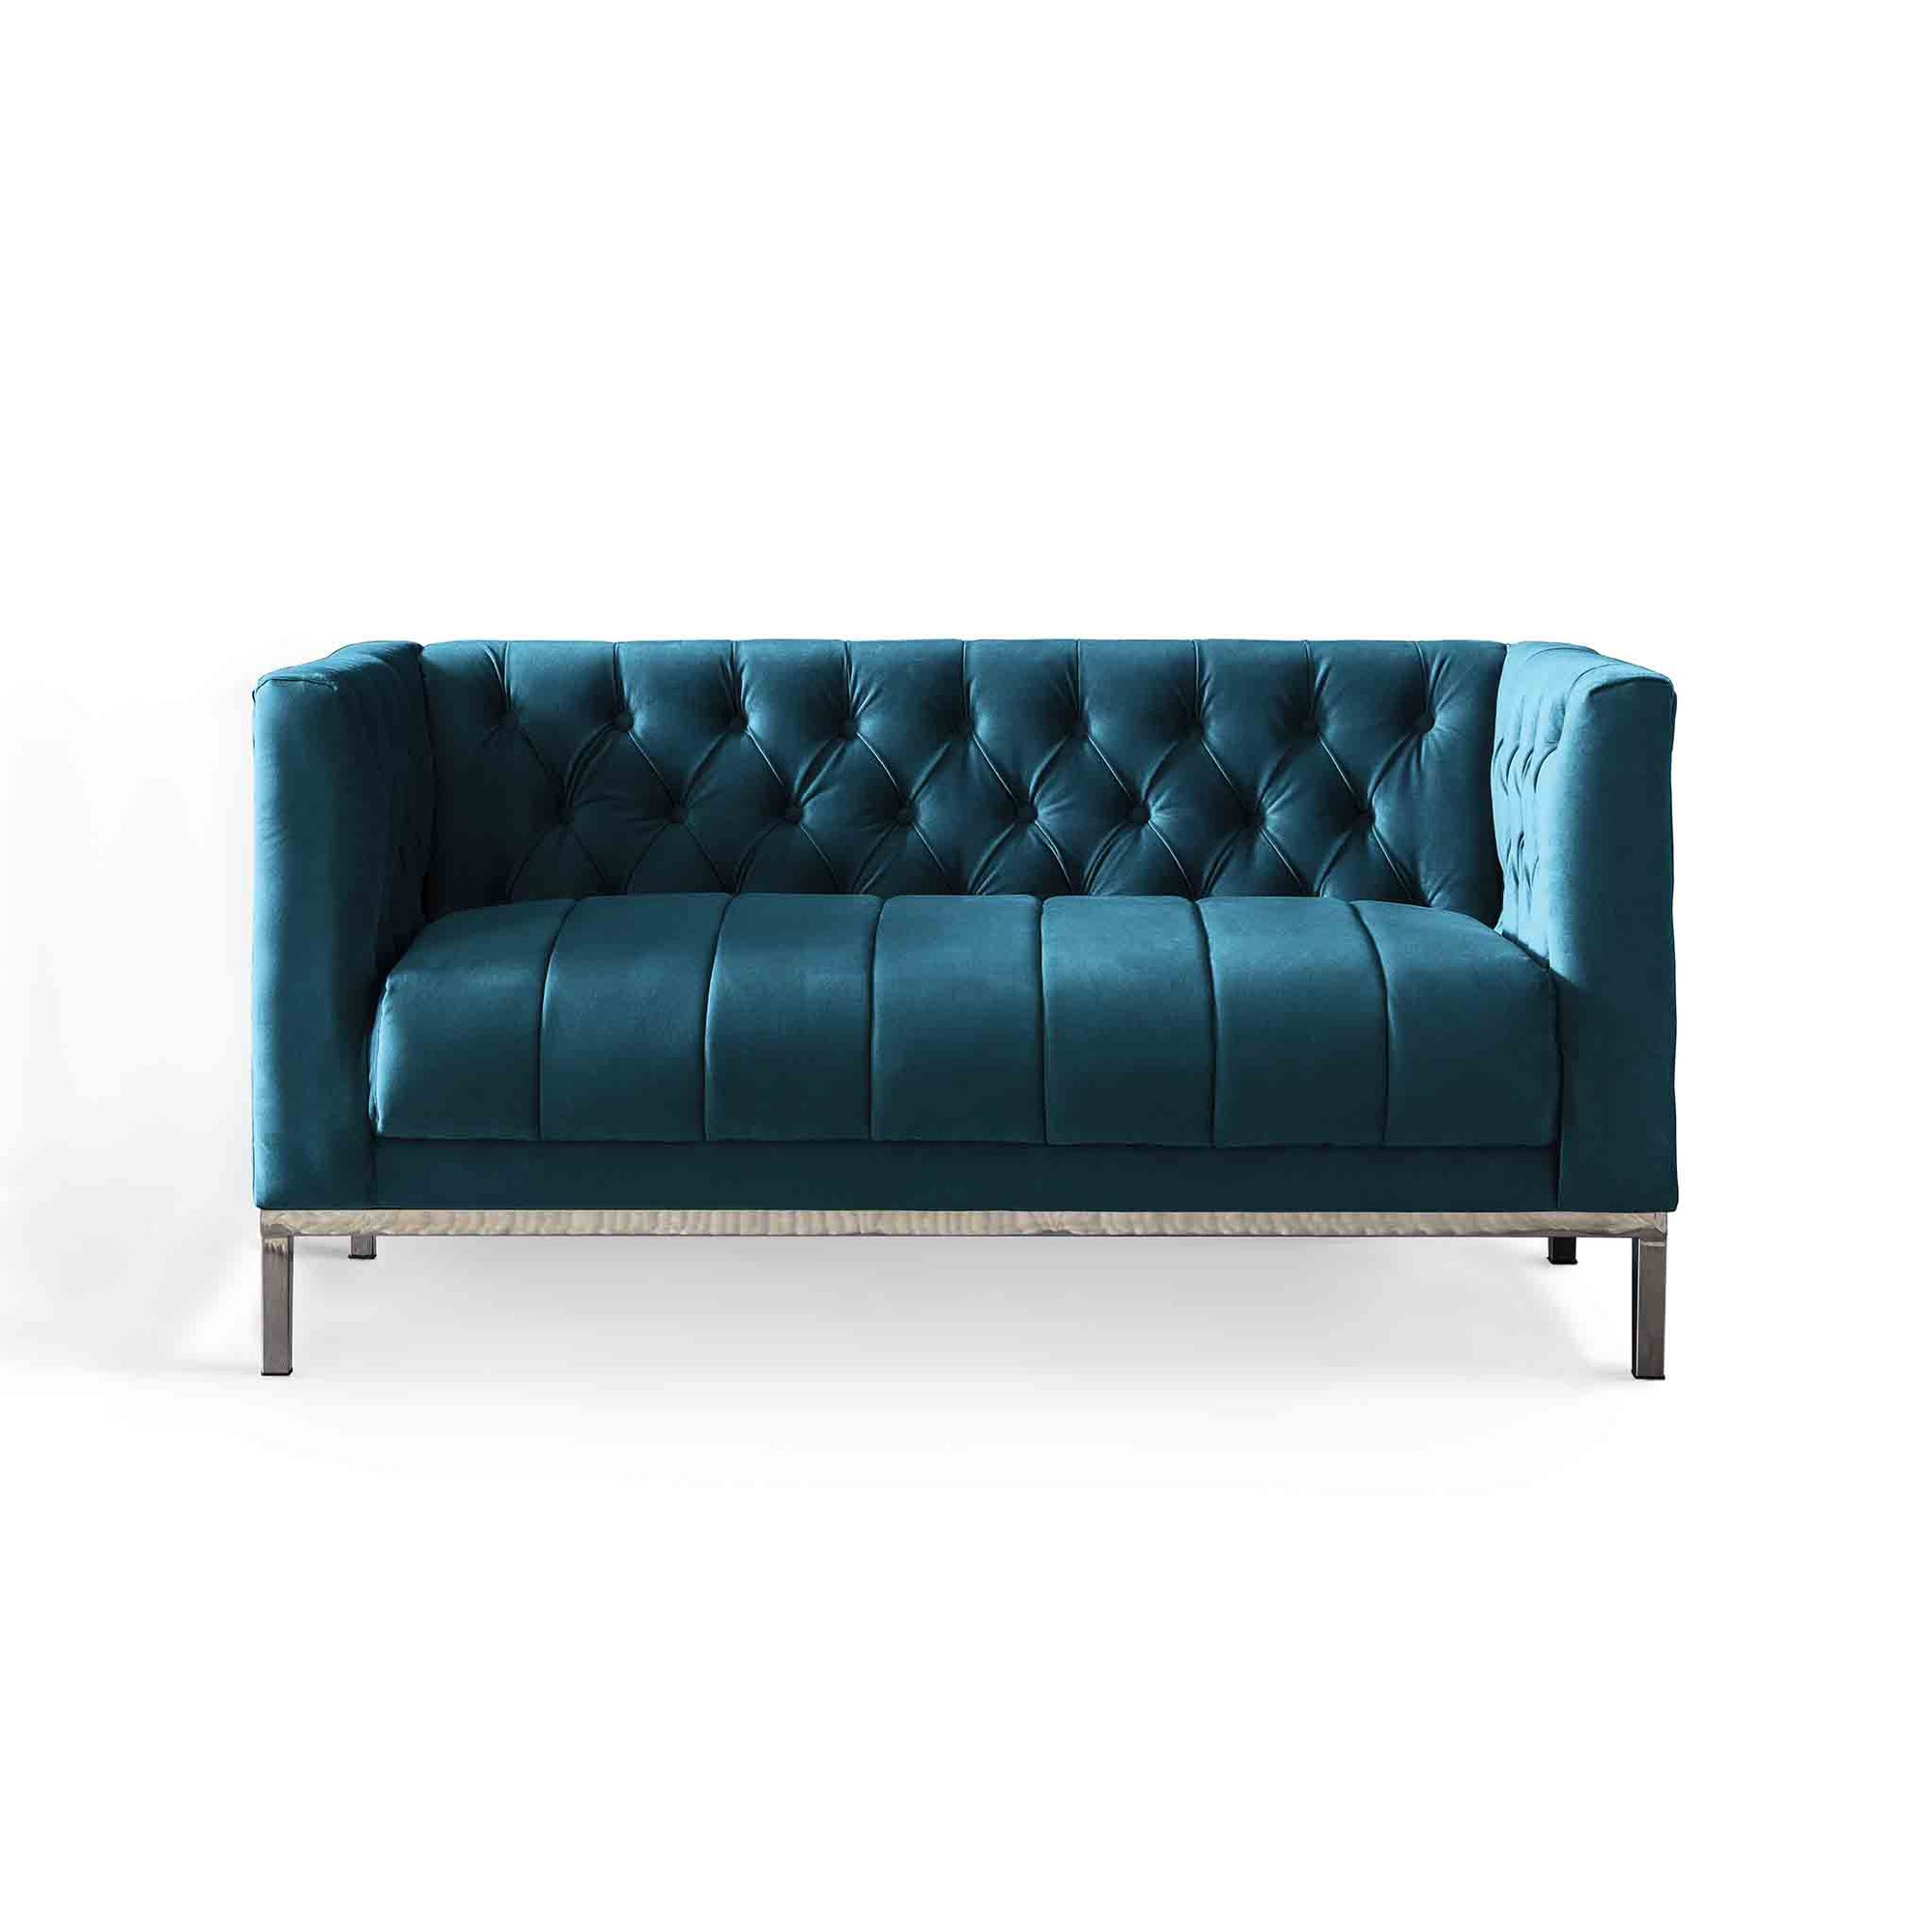 Mayfair Peacock 2 Seater Sofa by Roseland Furniture